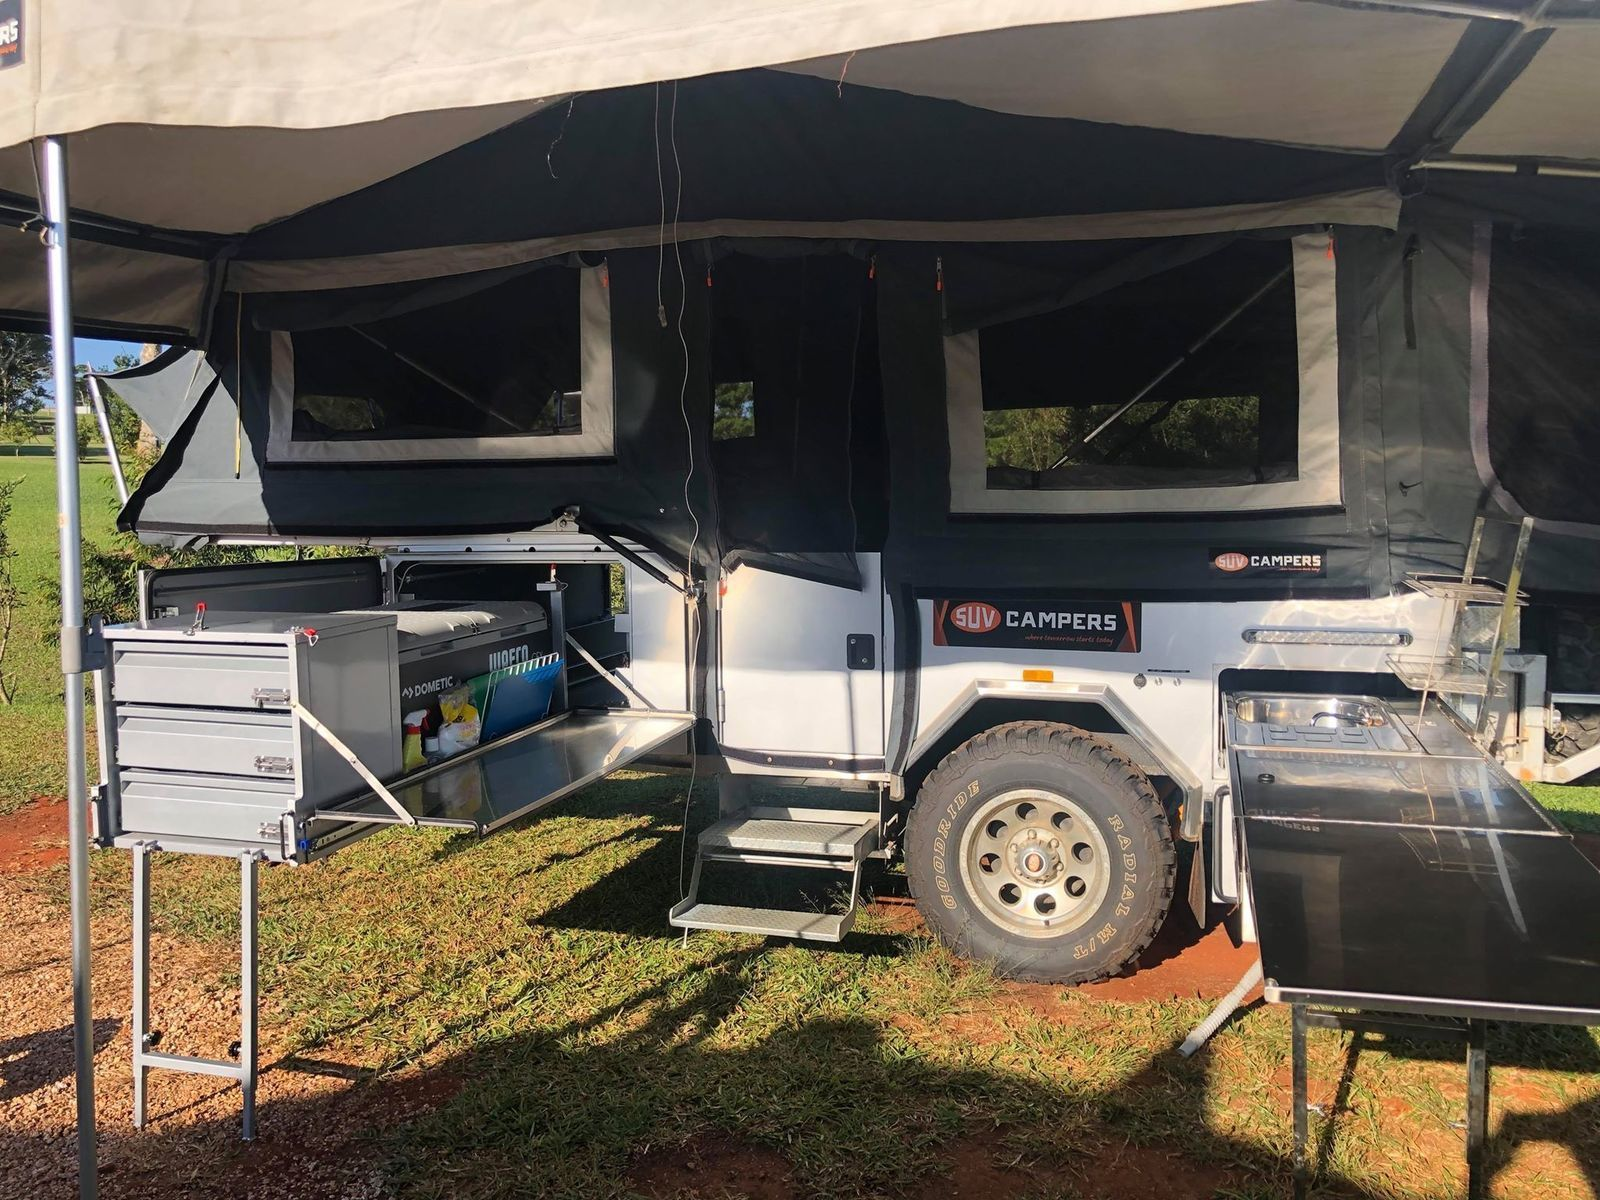 Hard-floor Camper Trailer for Hire in Peeramon QLD from